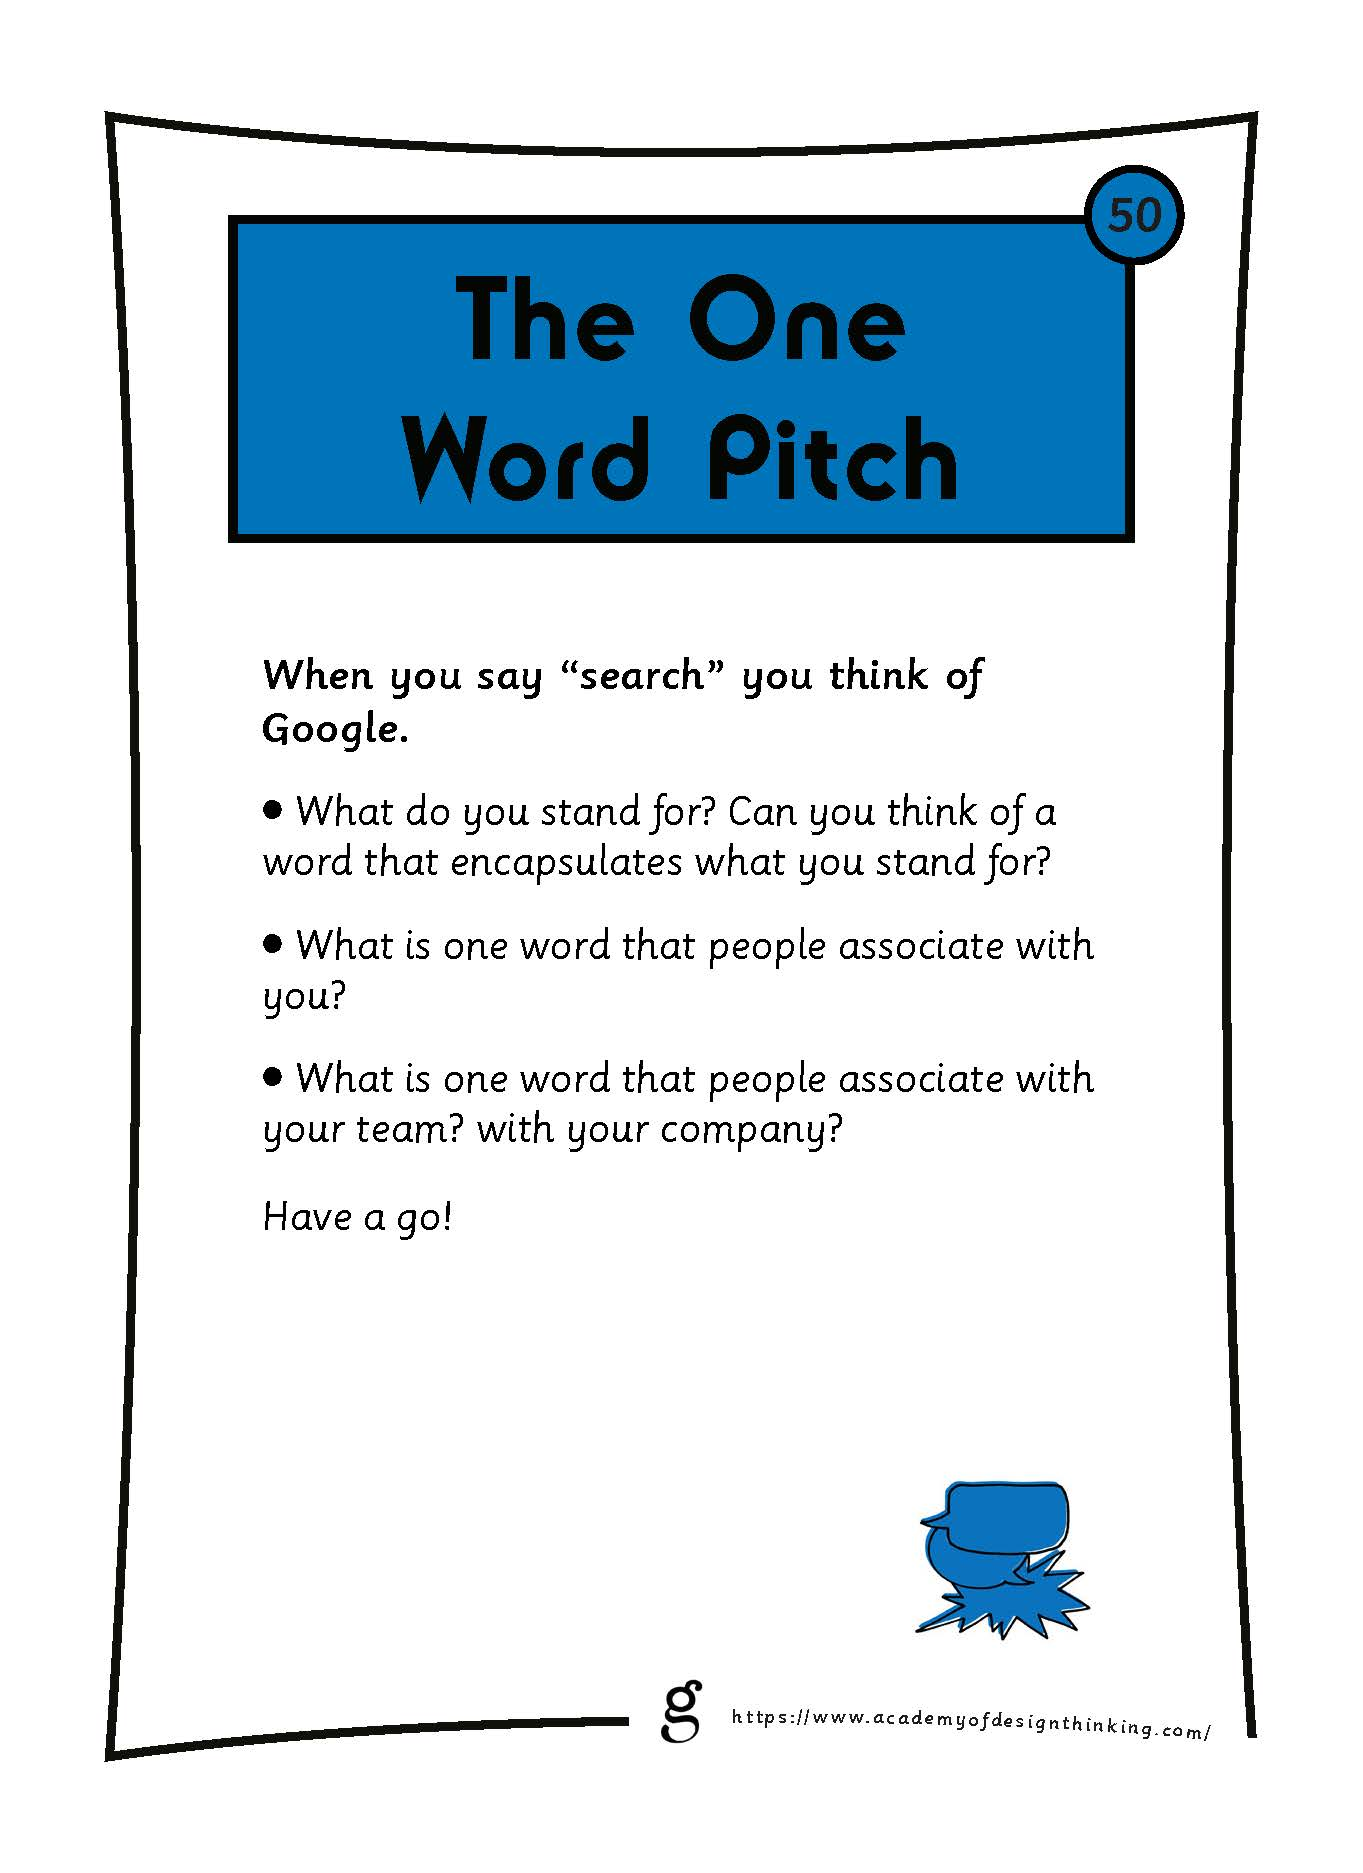 The One Word Pitch